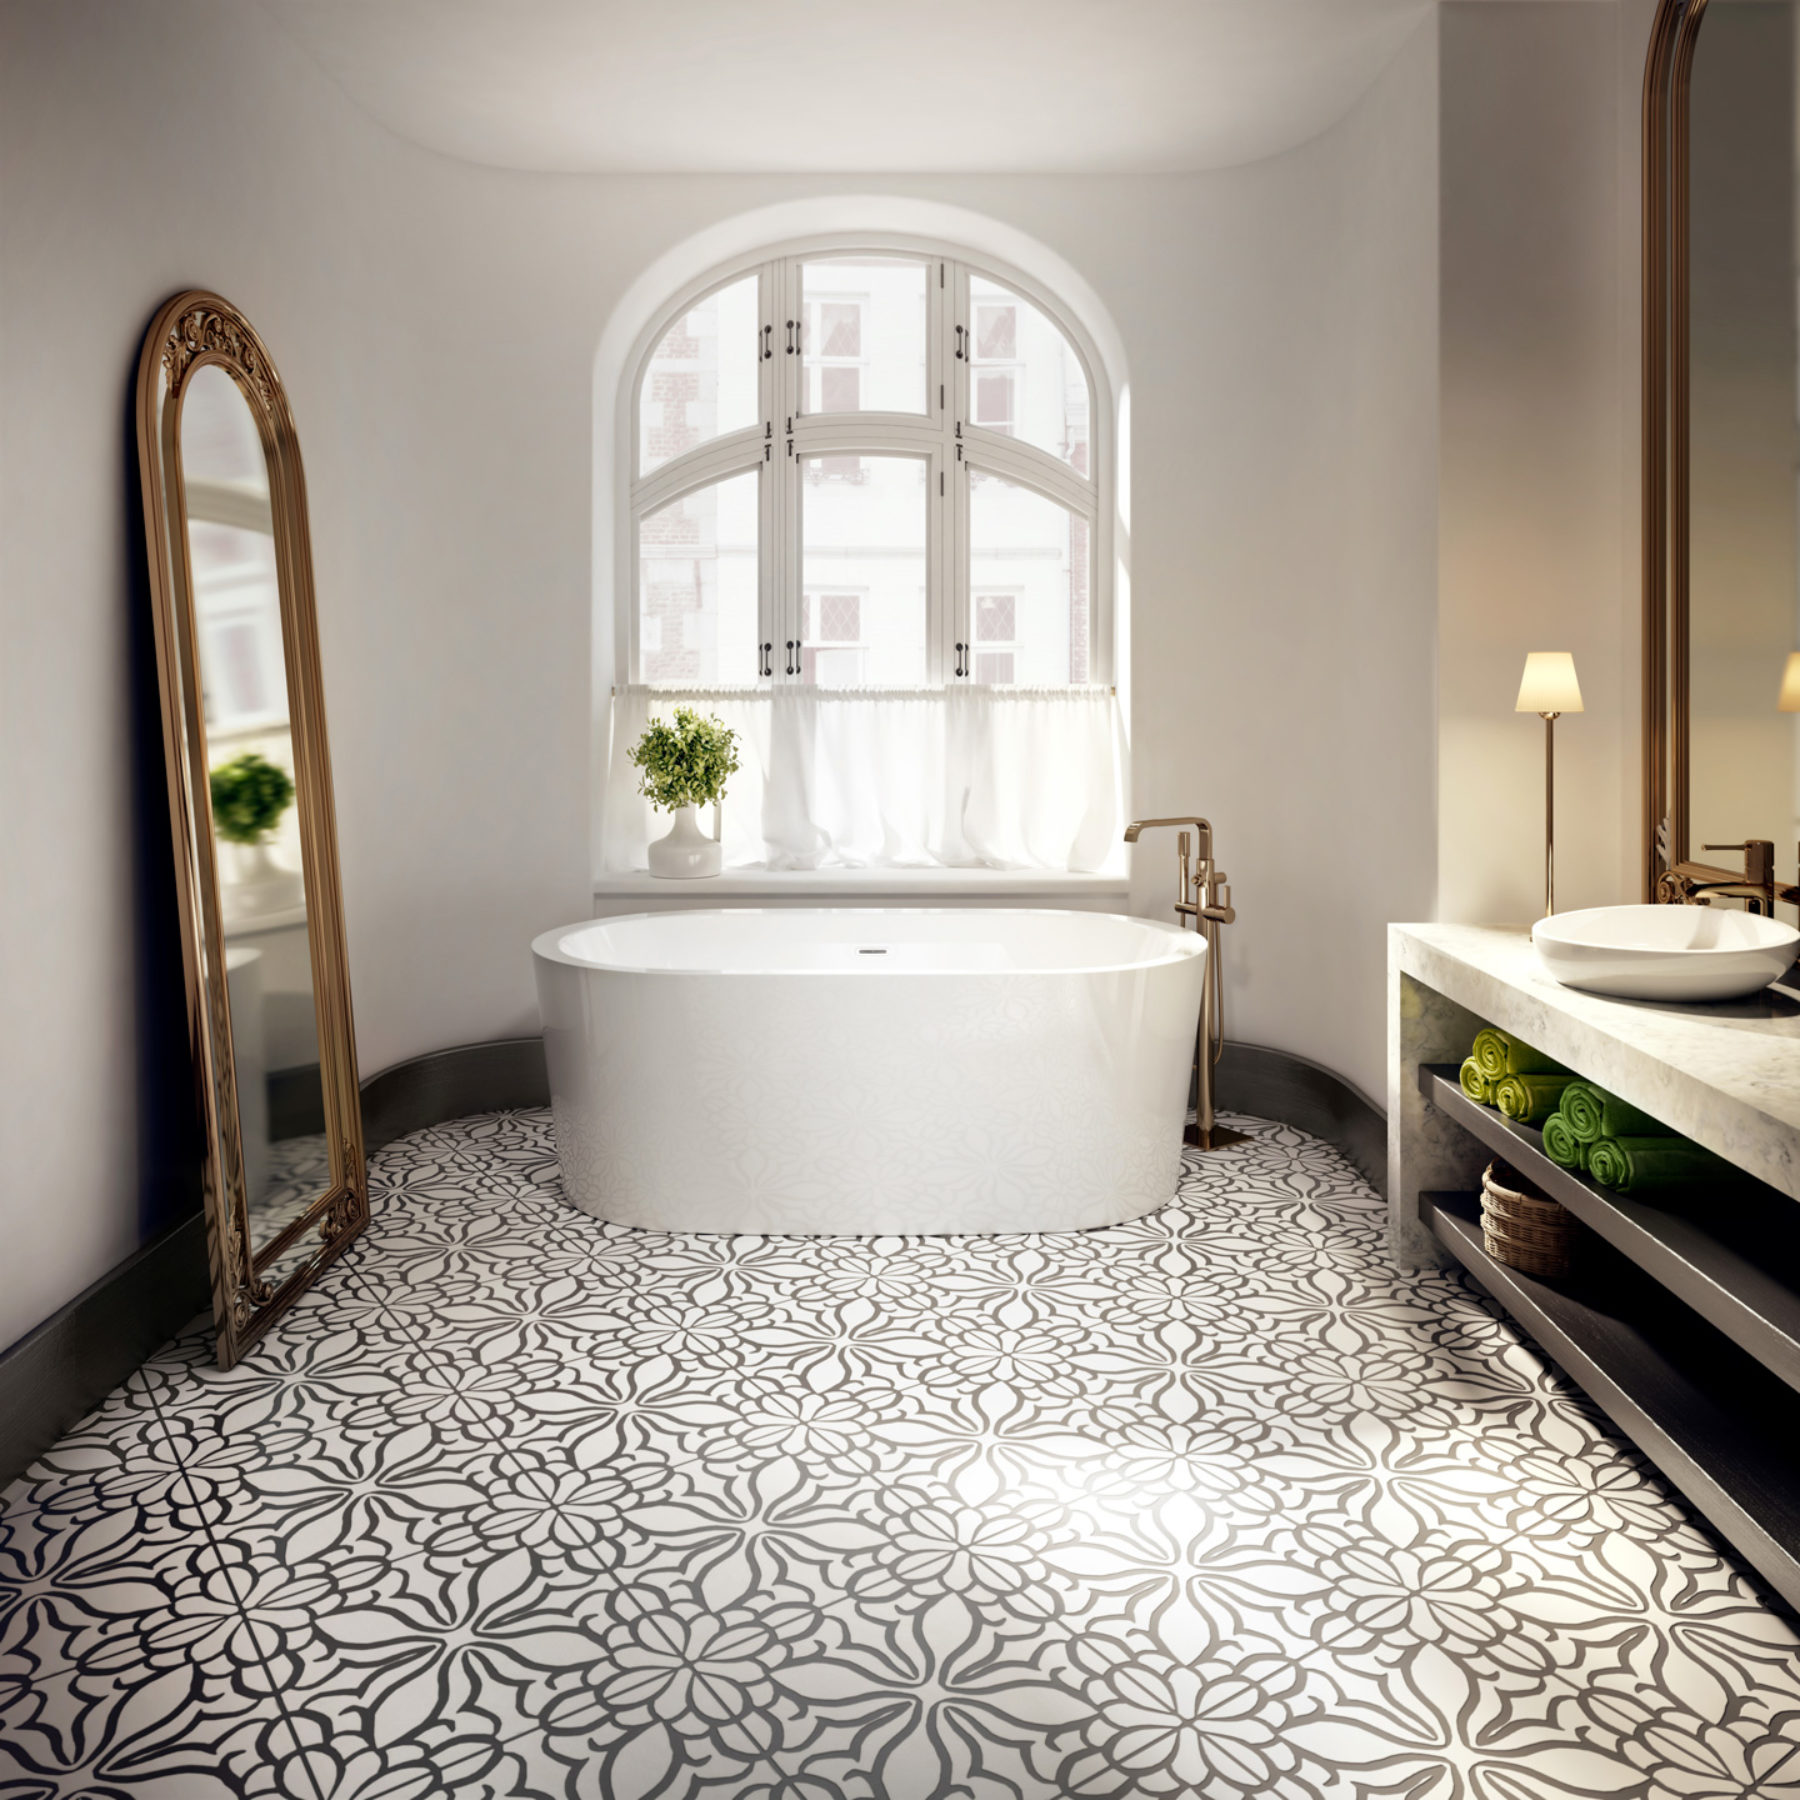 3d-artist-classic-appartment-bathroom-cgi-designer 3d-rendering